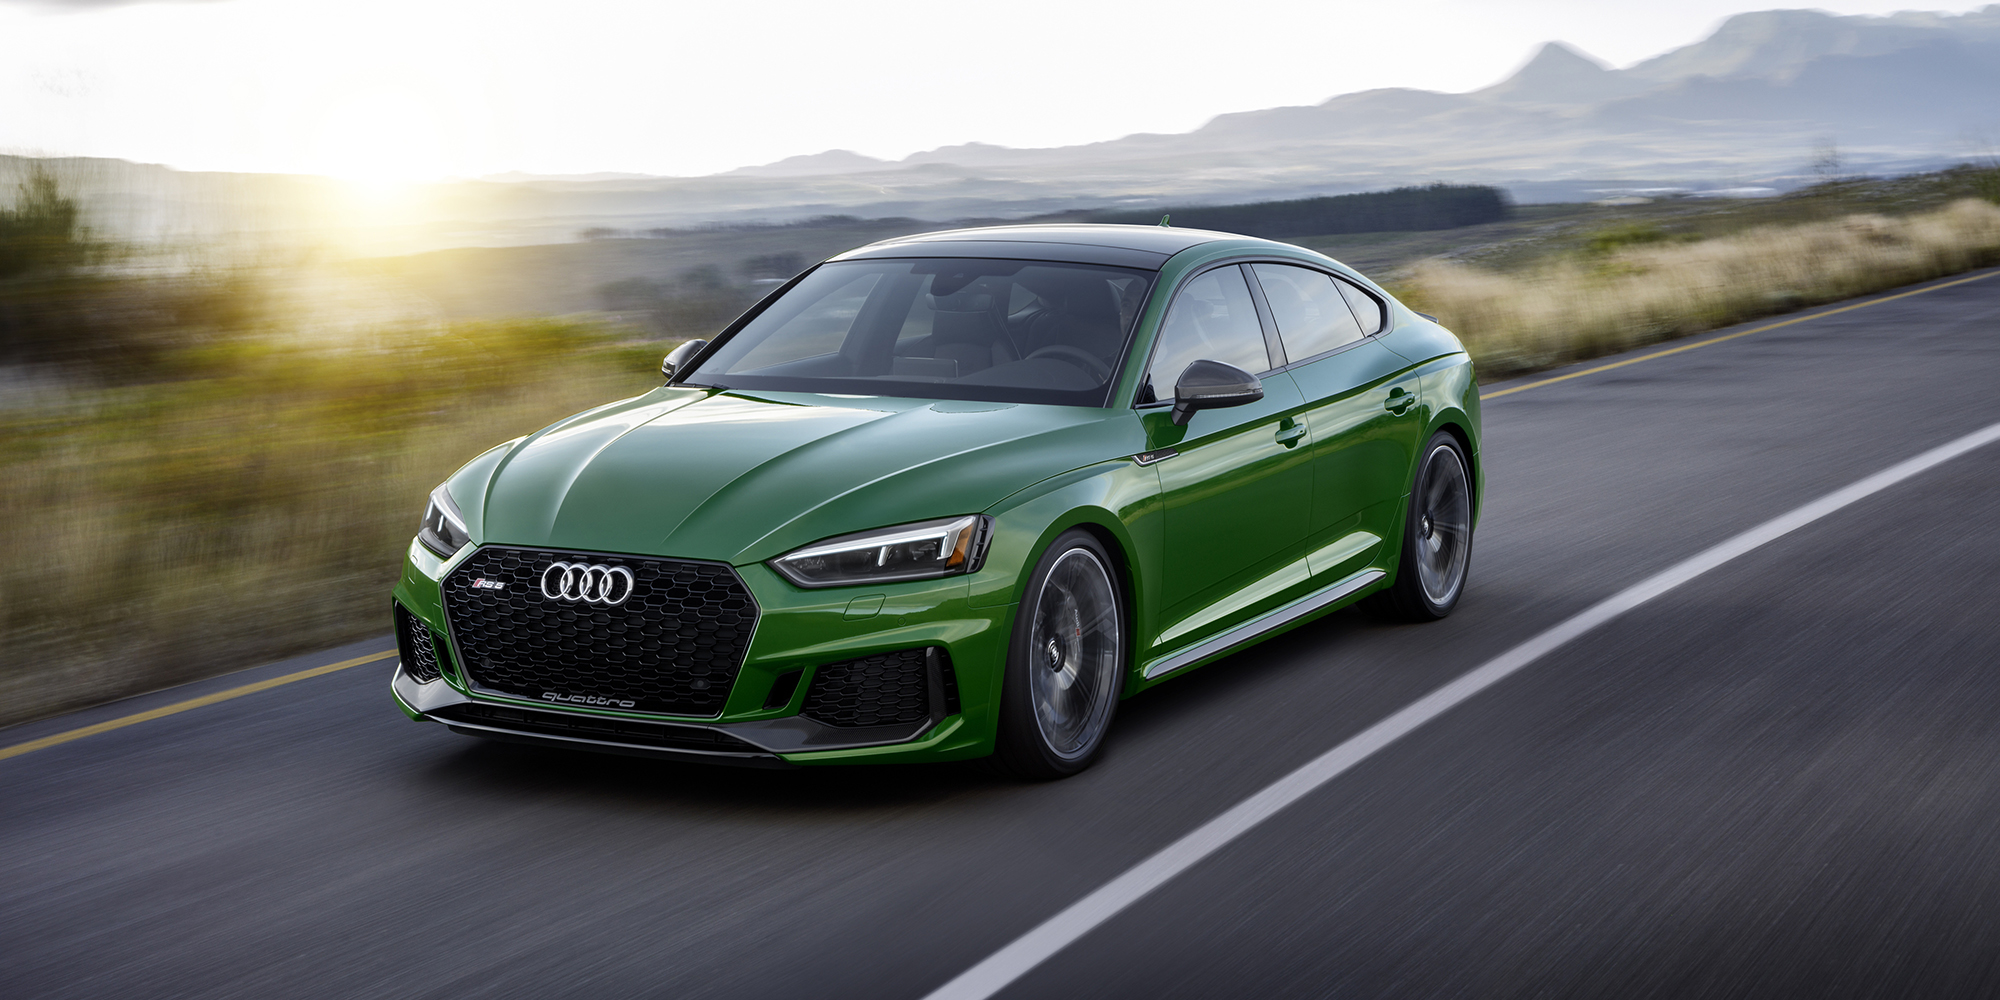 Audi RS5 Sportback: Flat-out fastback